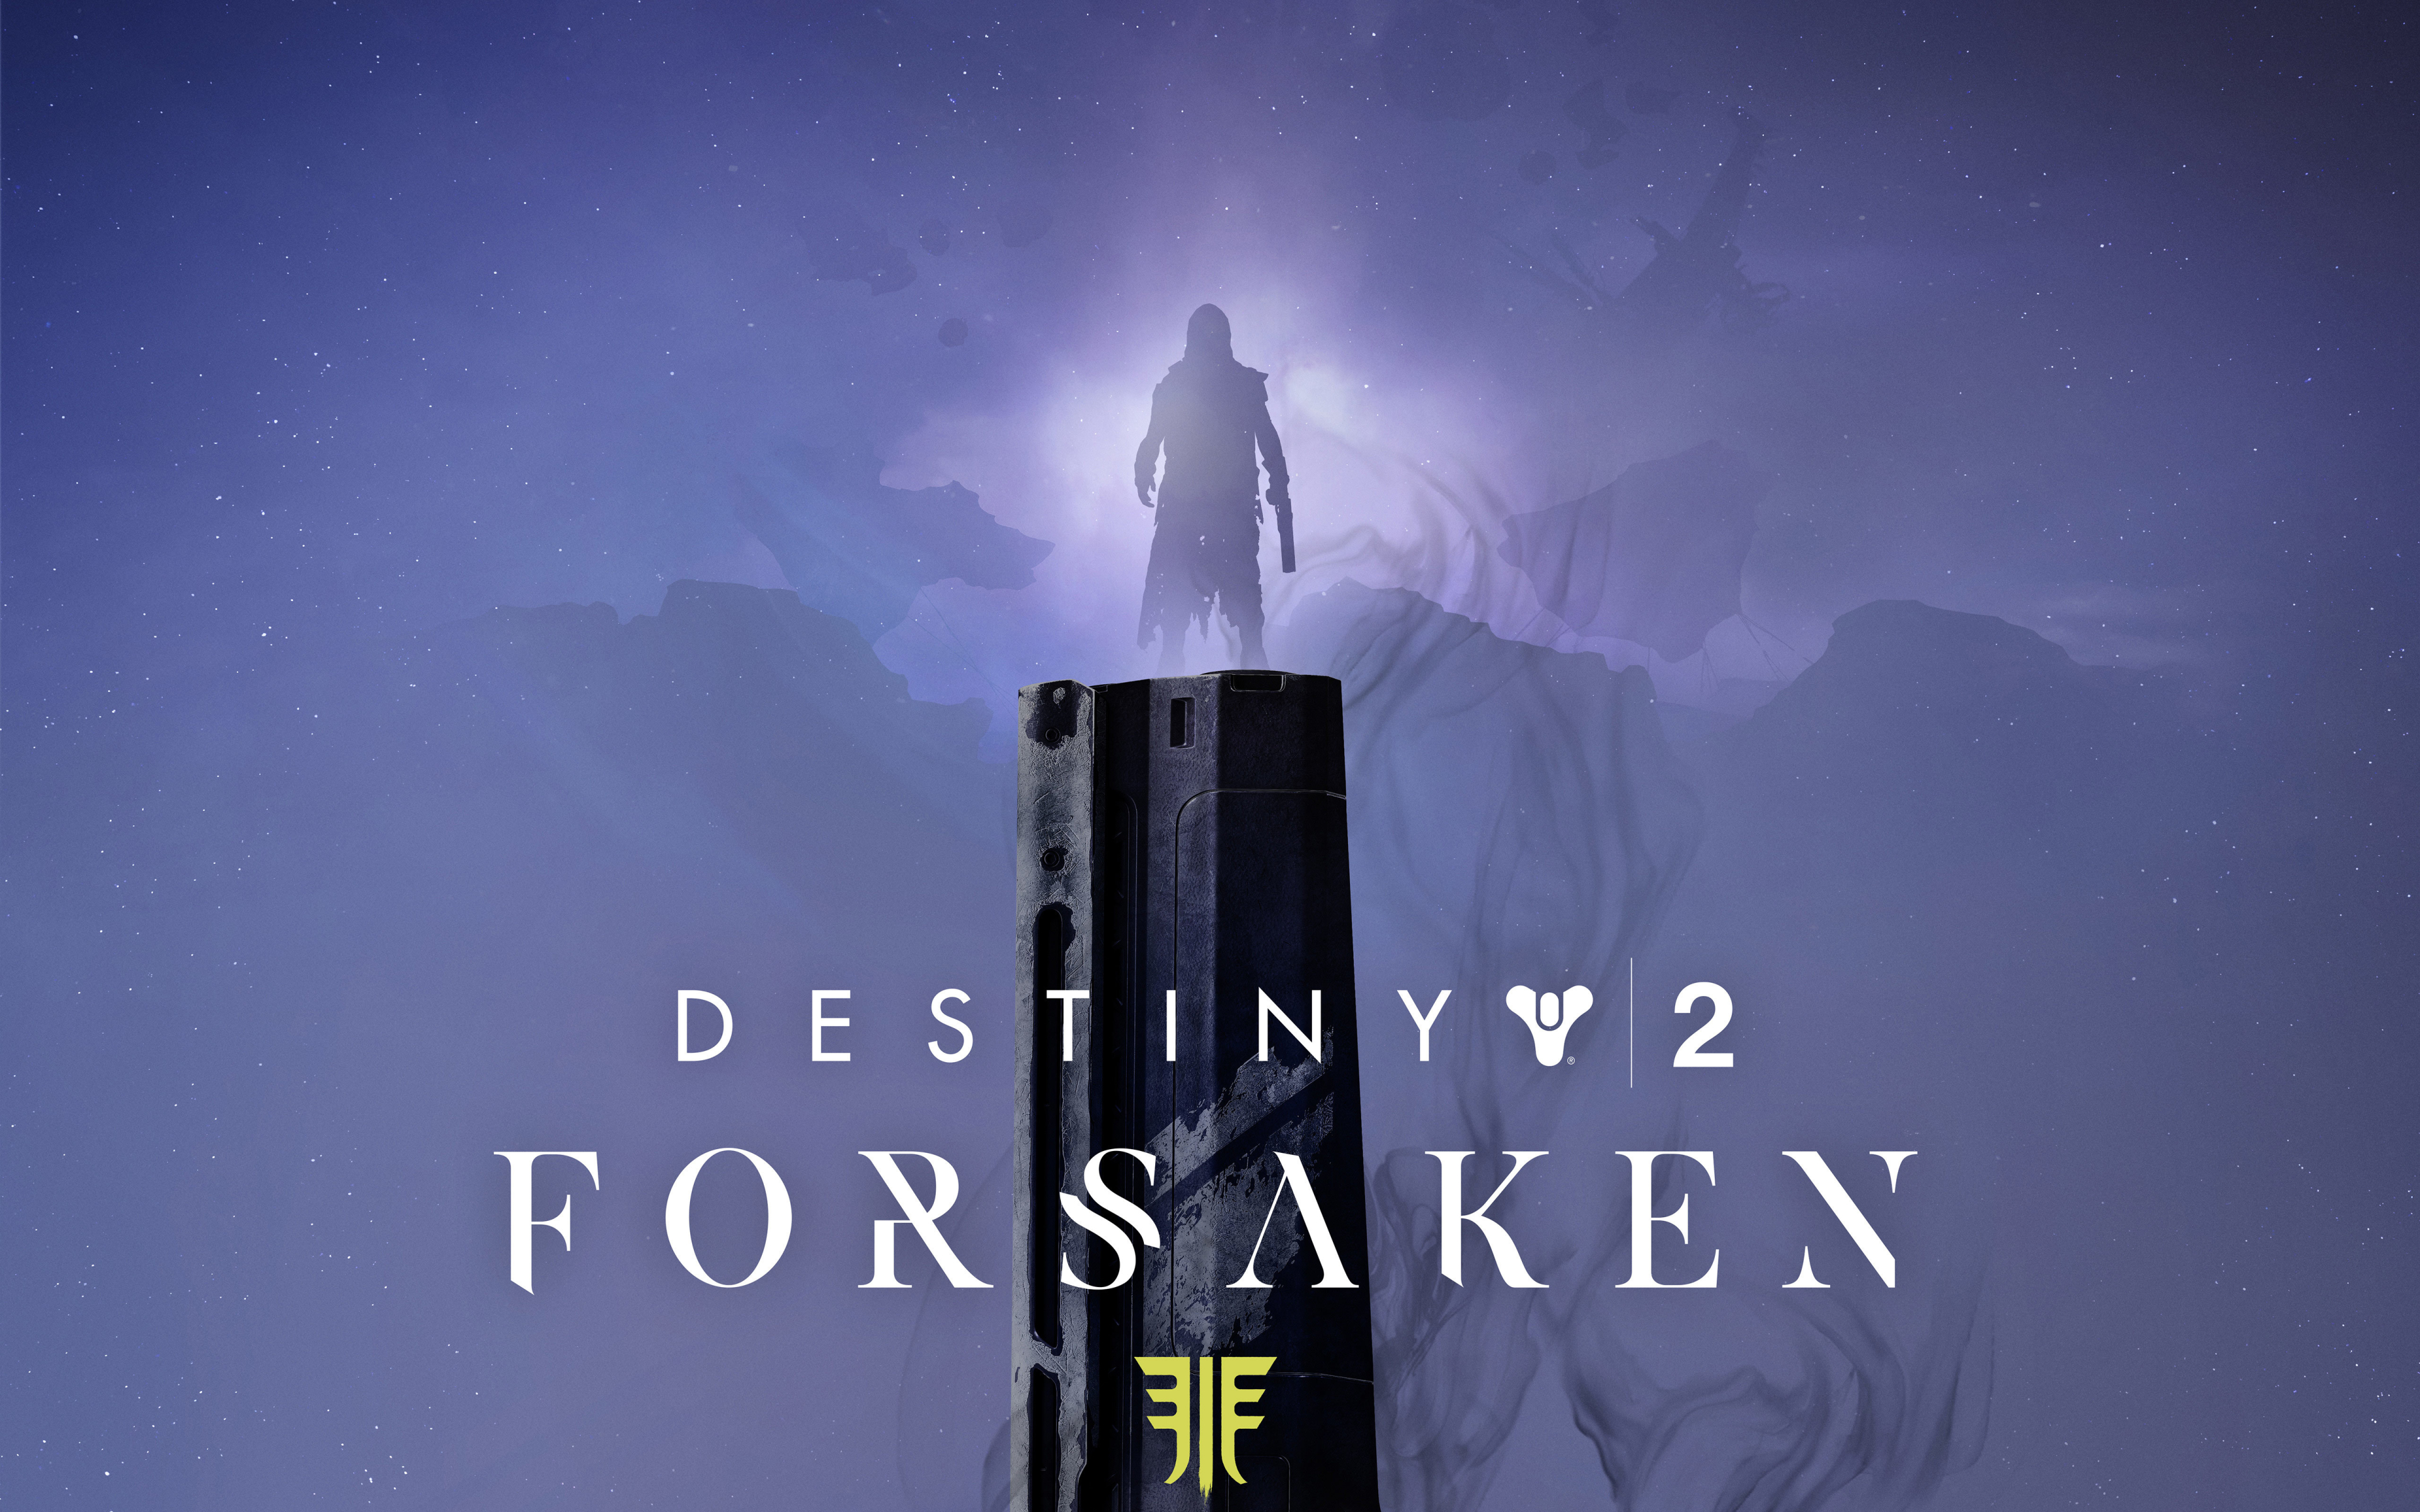 Destiny 2 Forsaken 2018, HD 4K Wallpaper